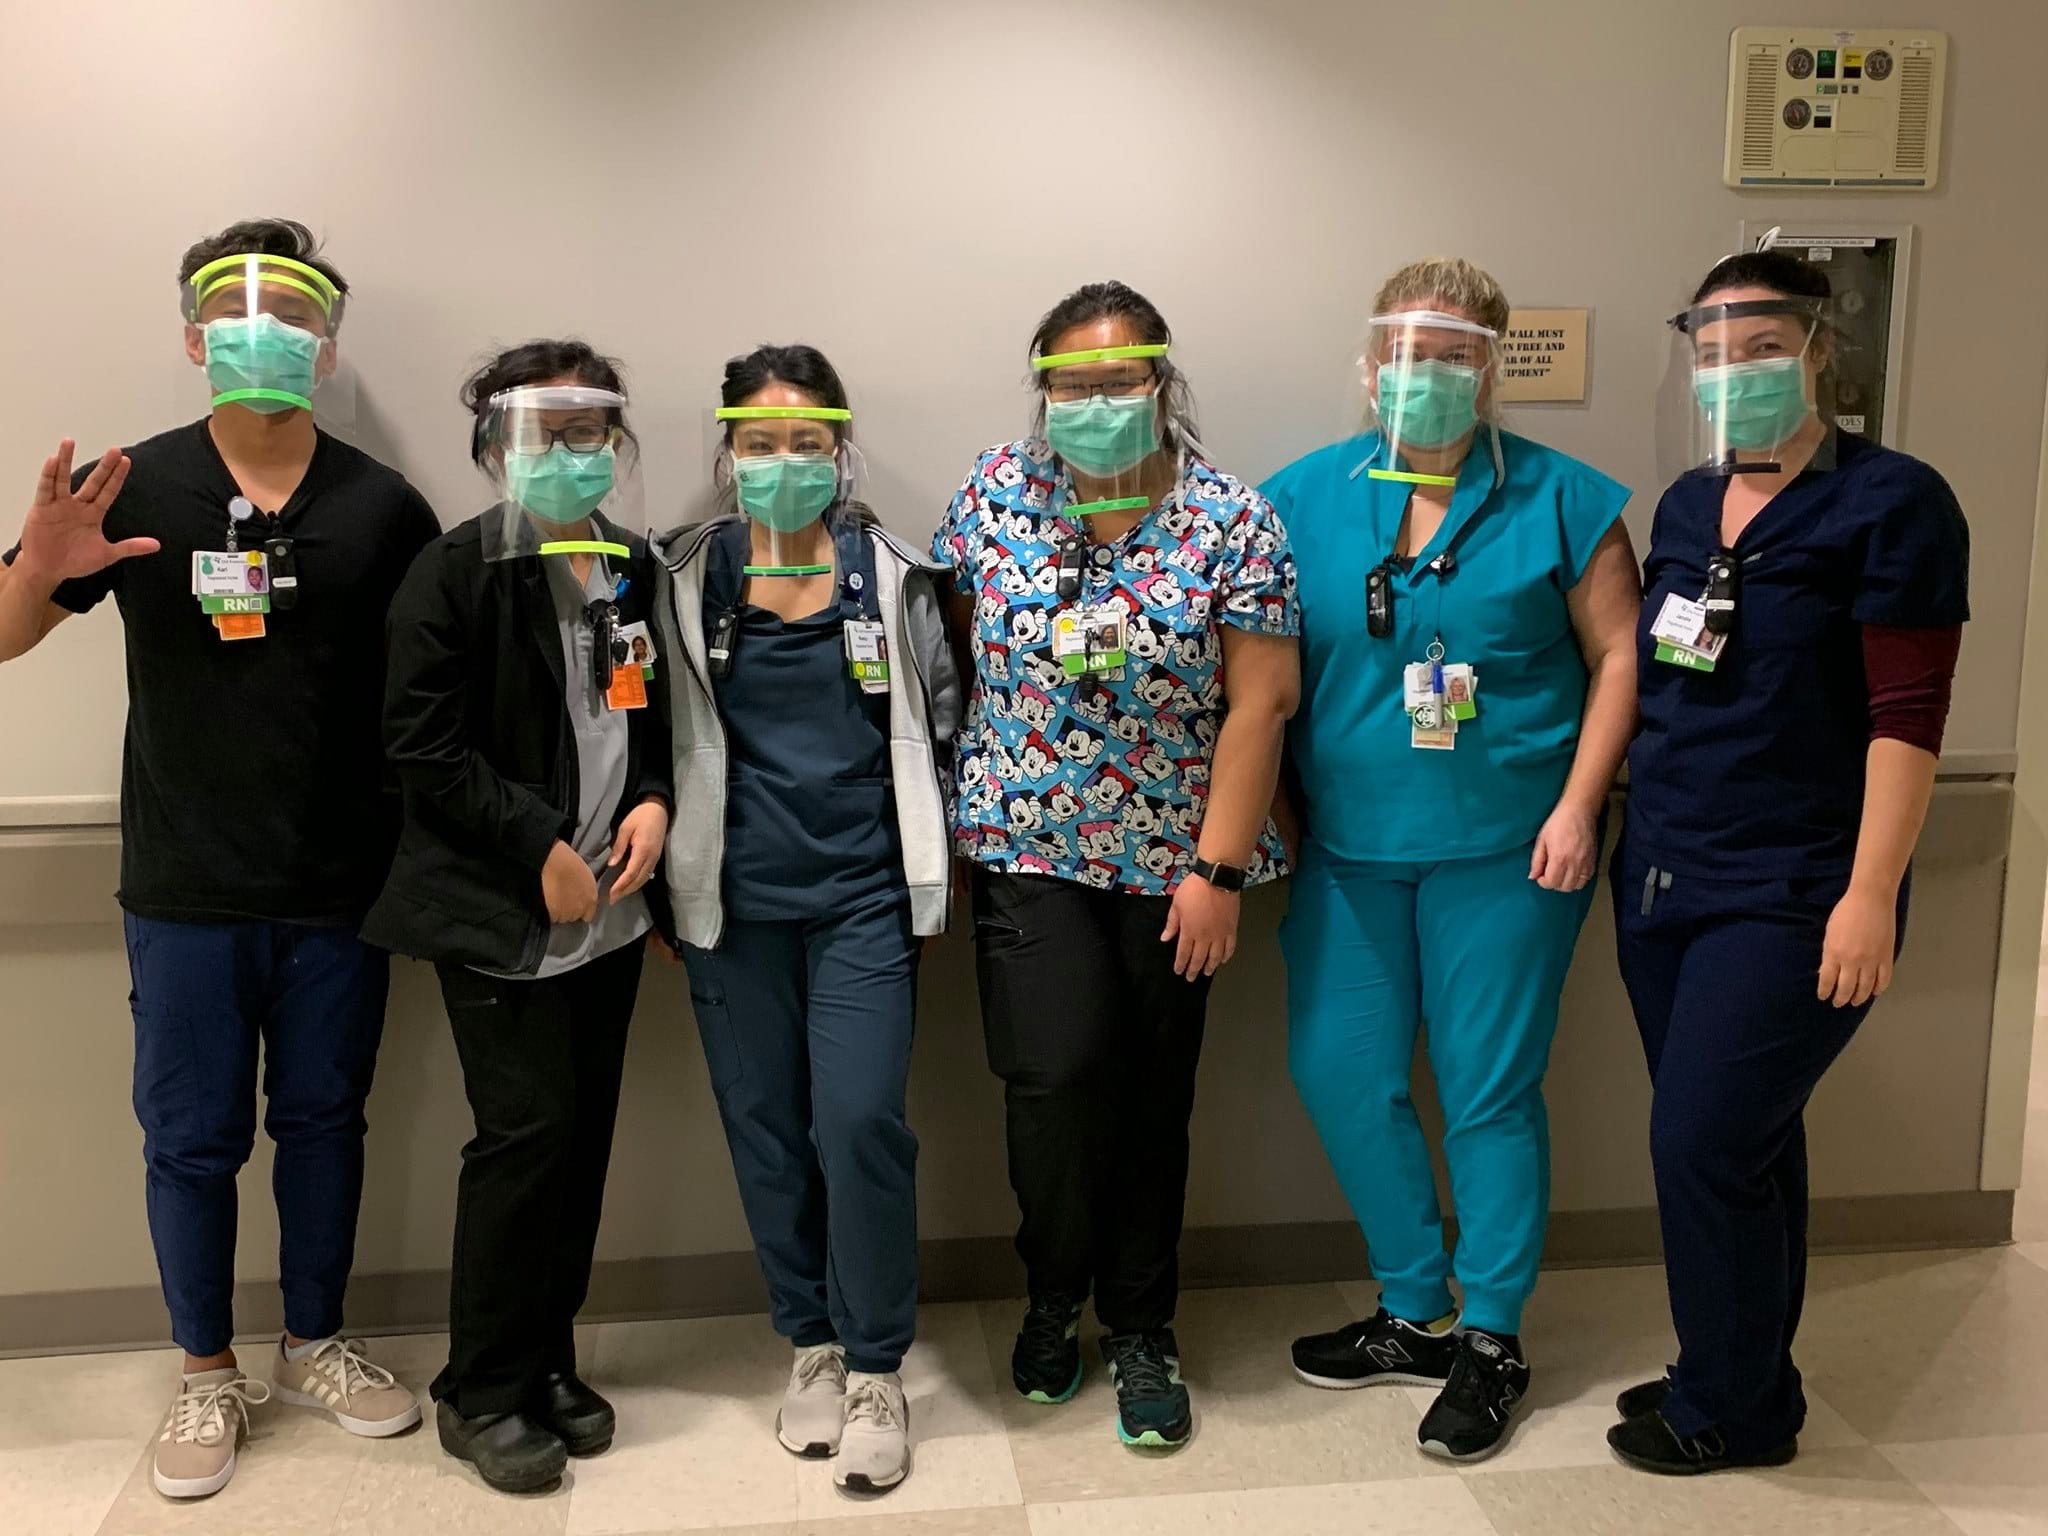 St. Joseph Emergency Department staff